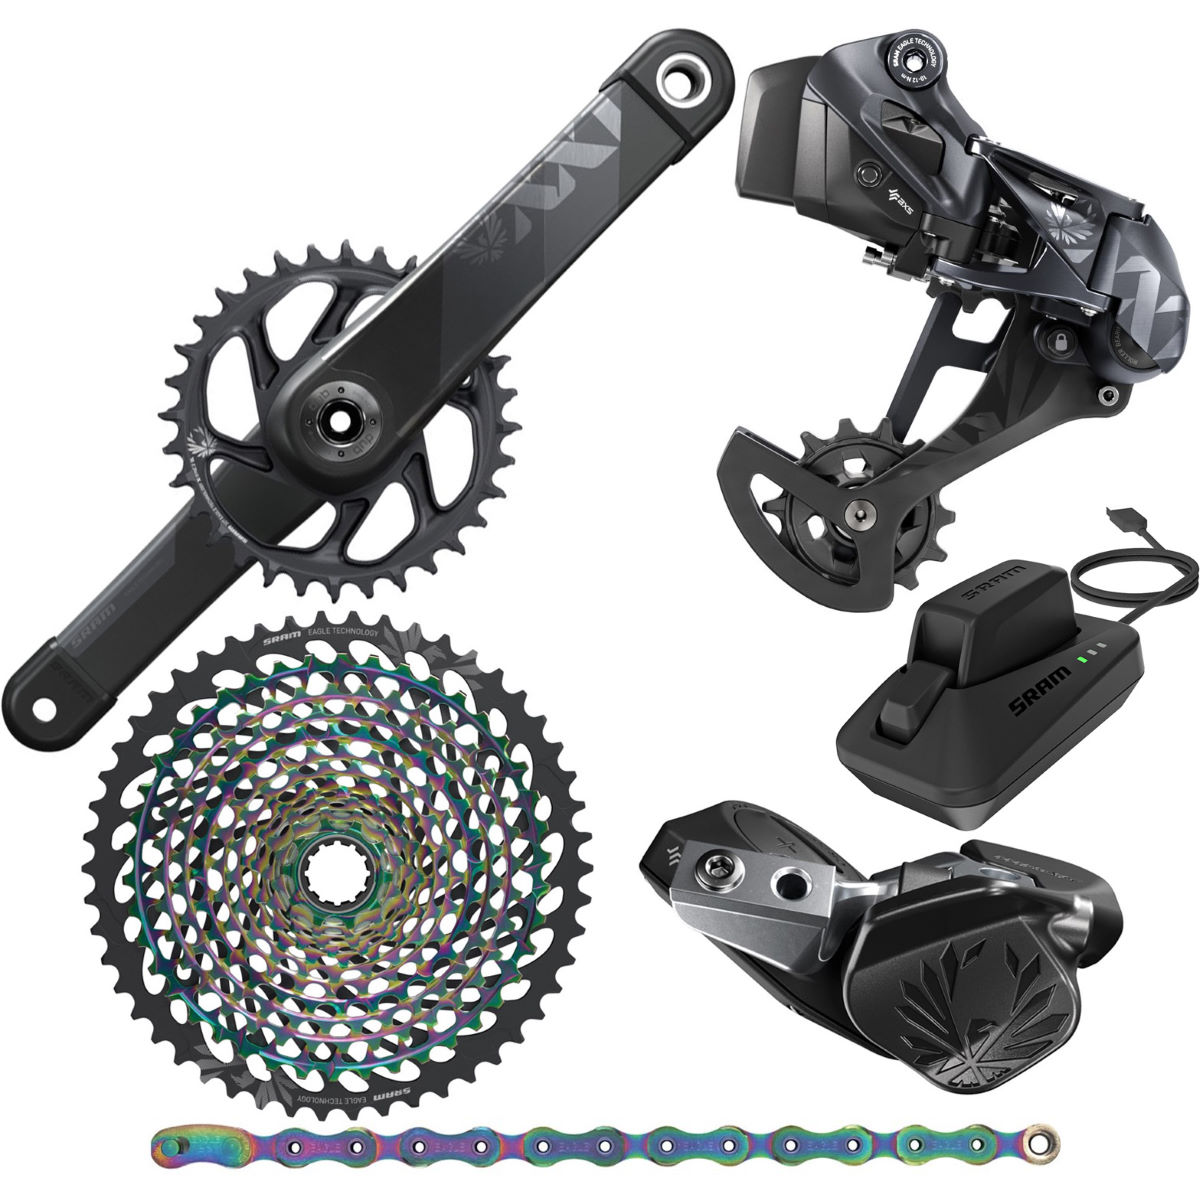 SRAM SRAM XX1 Eagle AXS DUB 12Sp Groupset   Groupsets